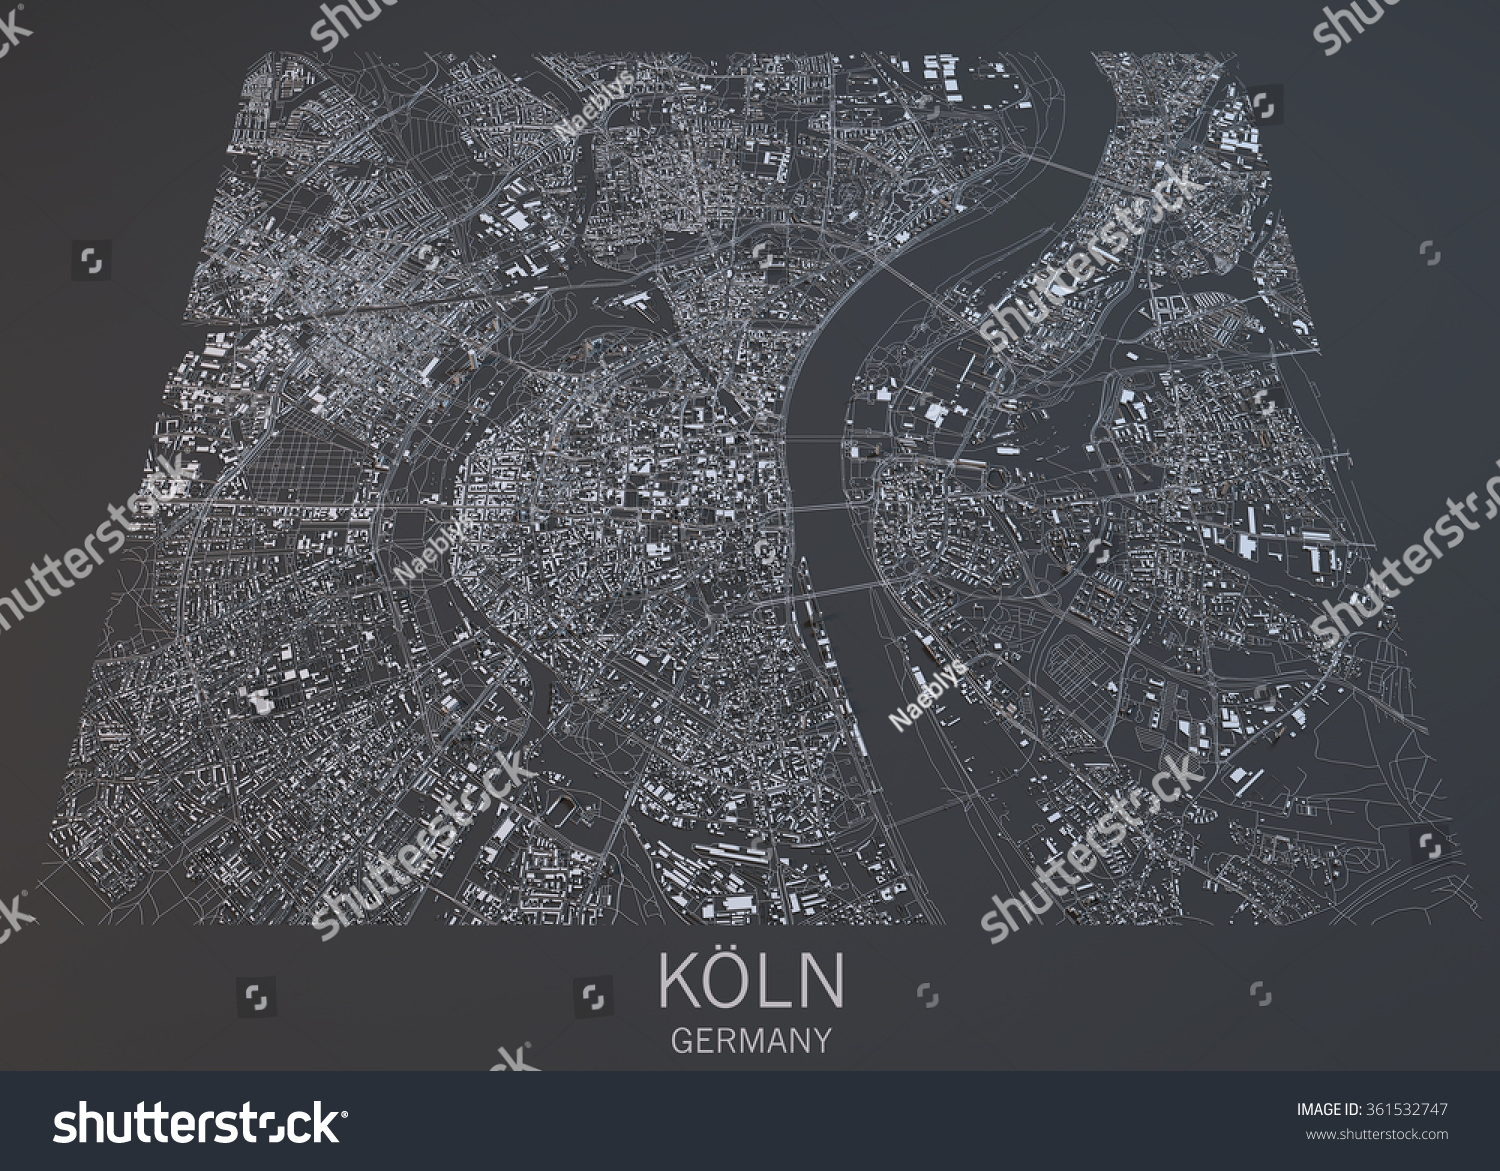 Cologne Map Satellite View Germany Stock Illustration - Germany map view